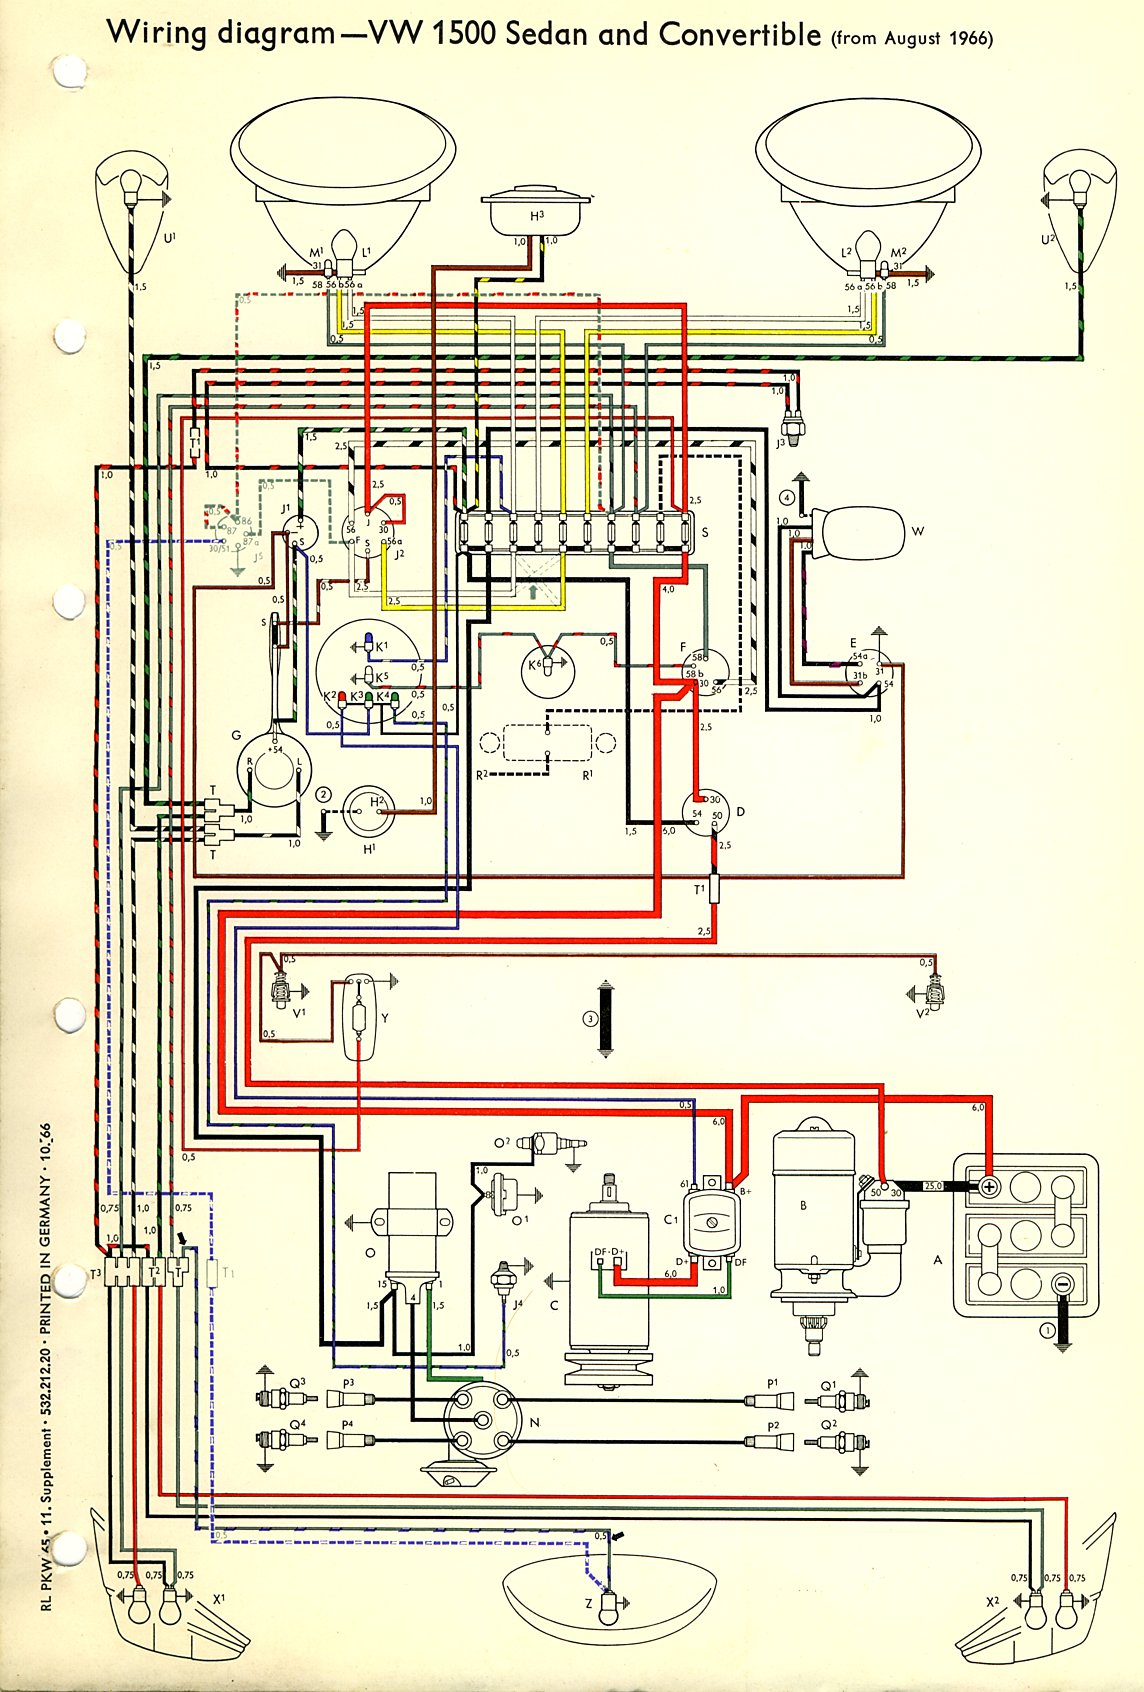 1968 vw beetle wiring diagram schema wiring diagramthesamba com type 1 wiring diagrams 1967 vw beetle wiring diagram 1968 vw beetle wiring diagram